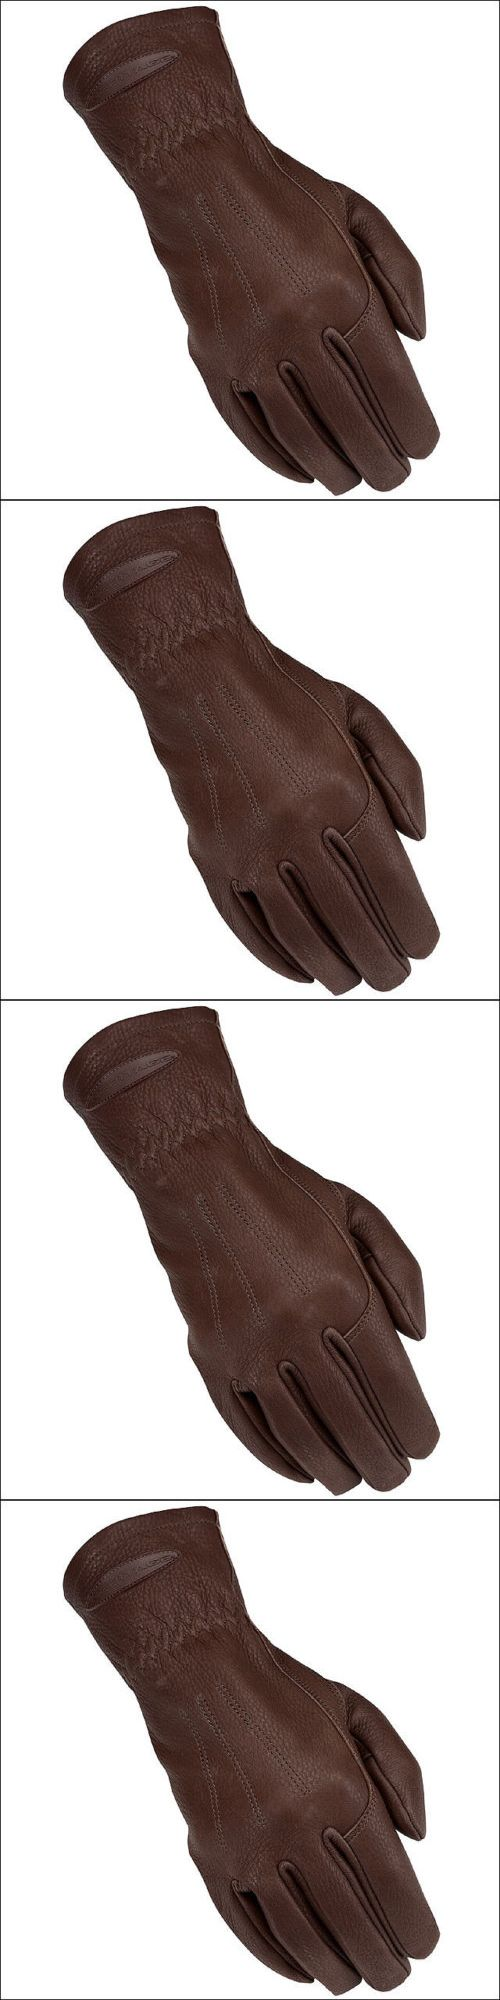 Ladies leather horse riding gloves - Riding Gloves 95104 09 Size Heritage Horse Carriage Driving Riding Glove Deer Skin Chocolate Brown